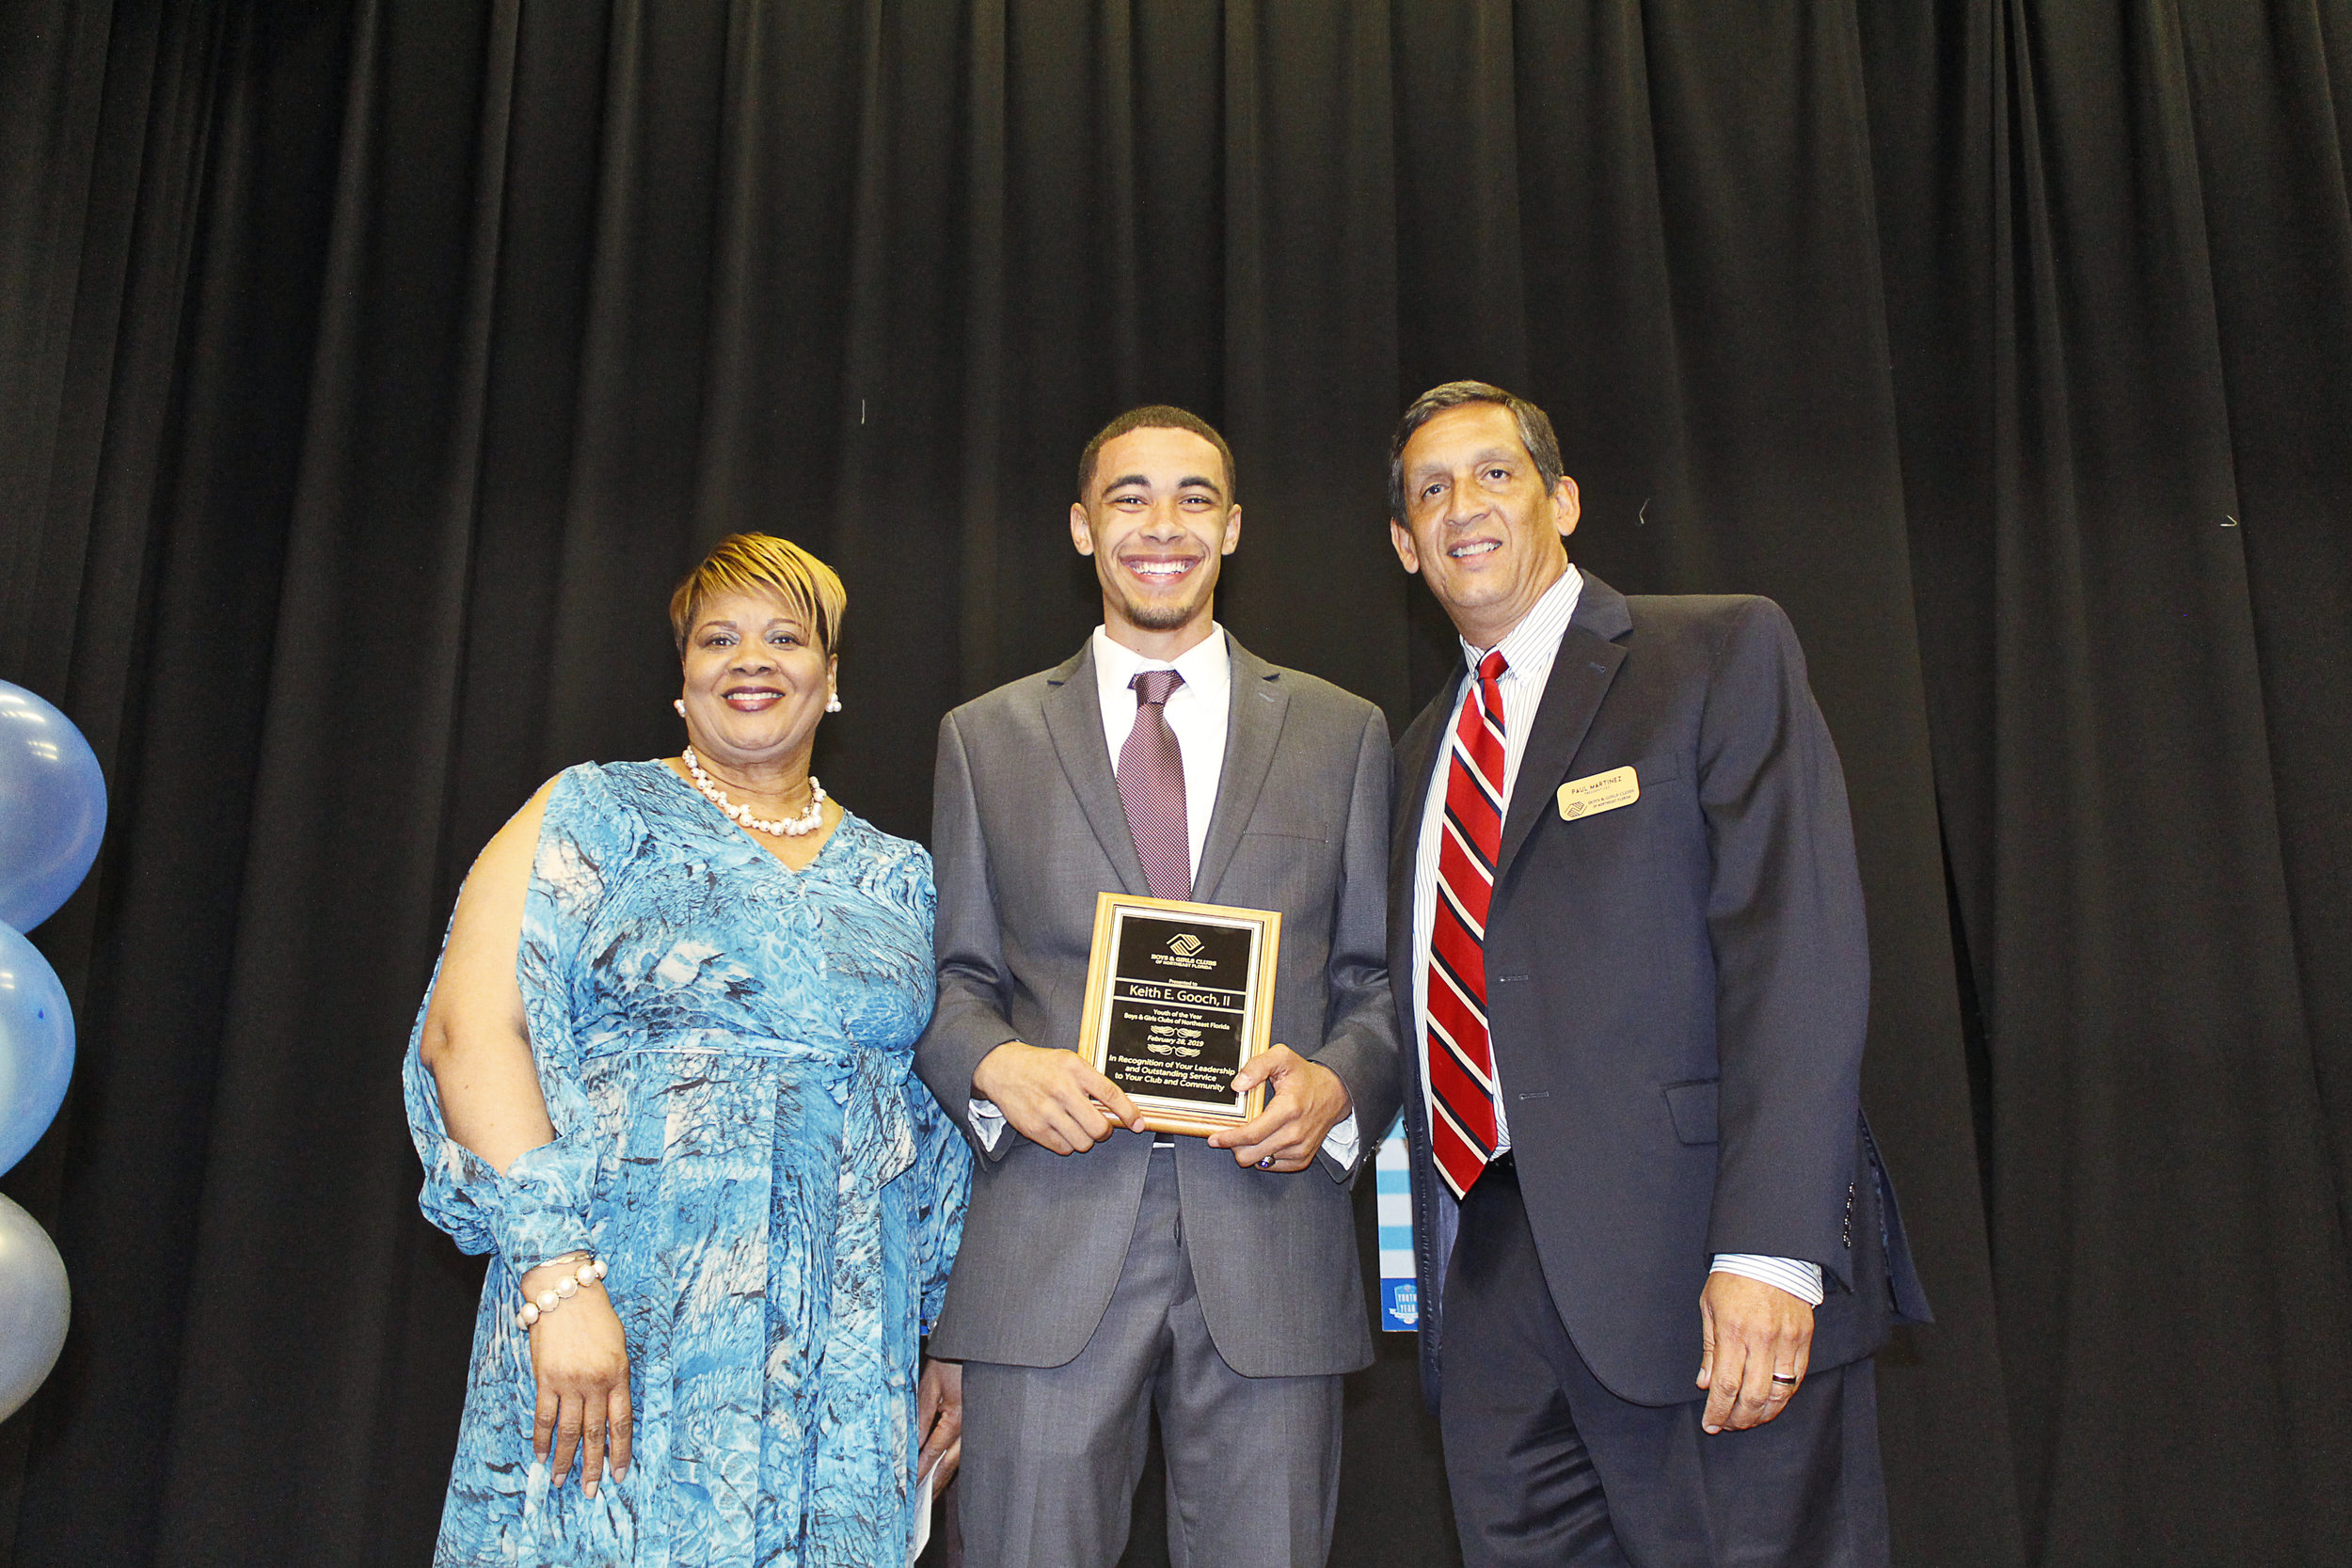 Executive Area Director, Yvonne Thompson, Keith Gooch, II, Boys & Girls Clubs of Northeast Florida's Youth of The Year and Paul Martinez, President and CEO of Boys & Girls Clubs of Northeast Florida.